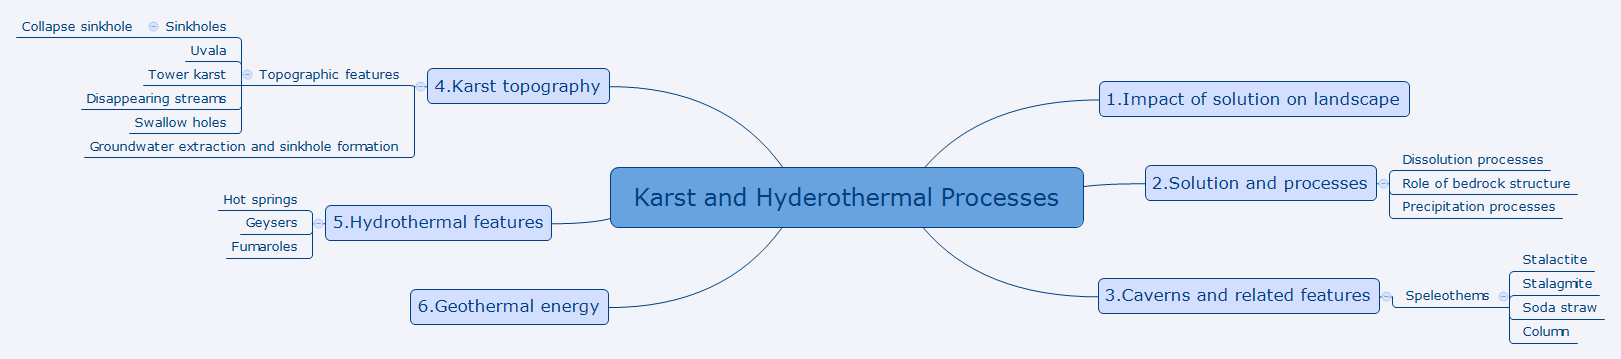 Karst and Hyderothermal Processes